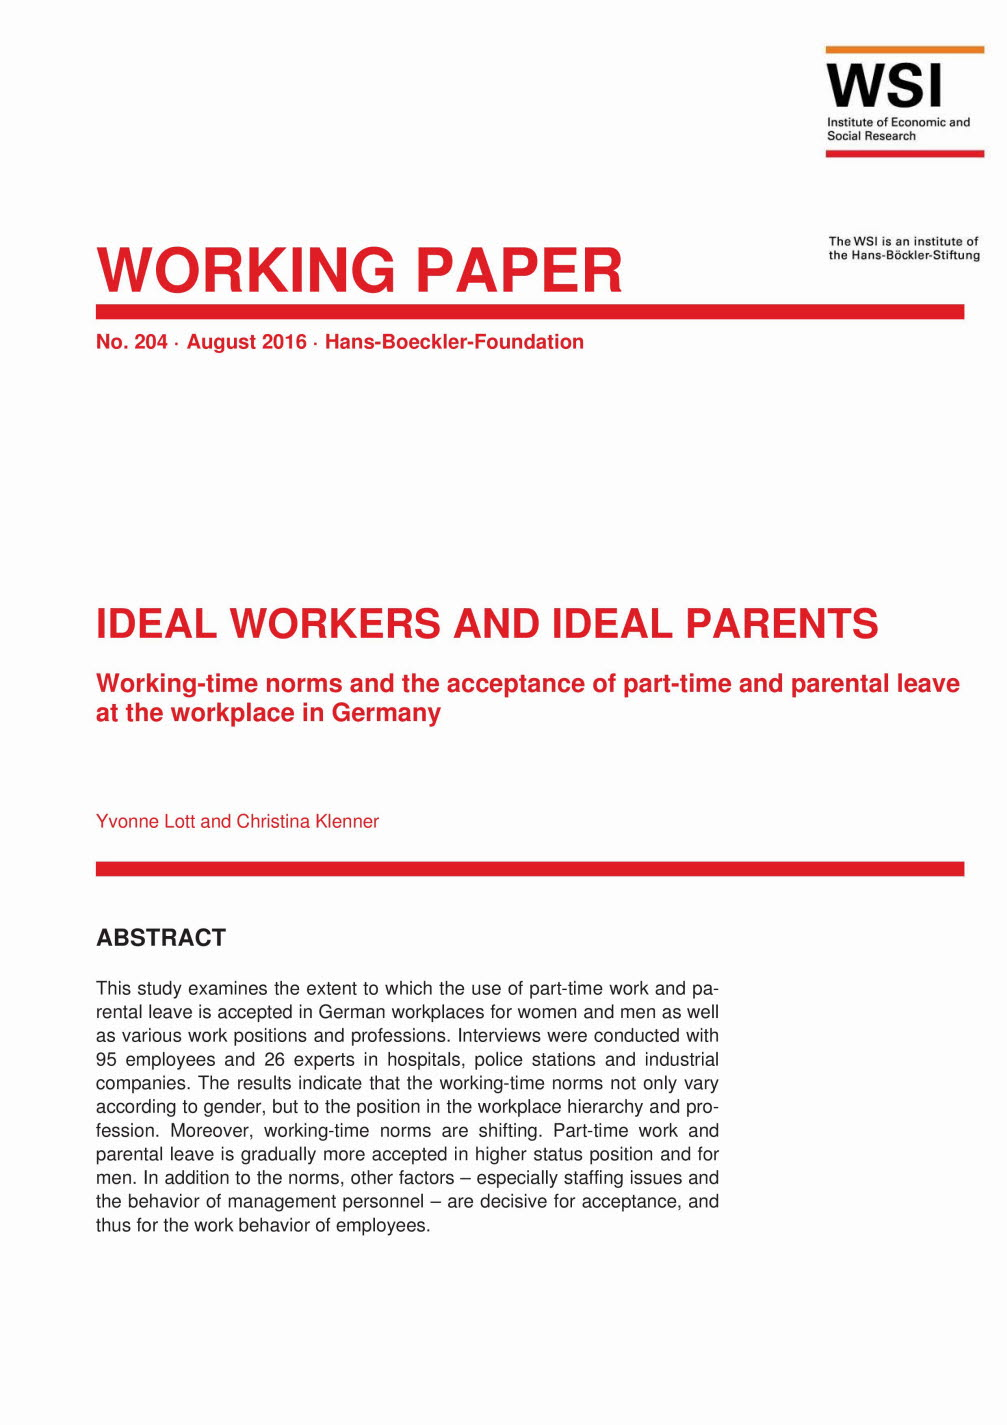 Ideal workers and ideal parents